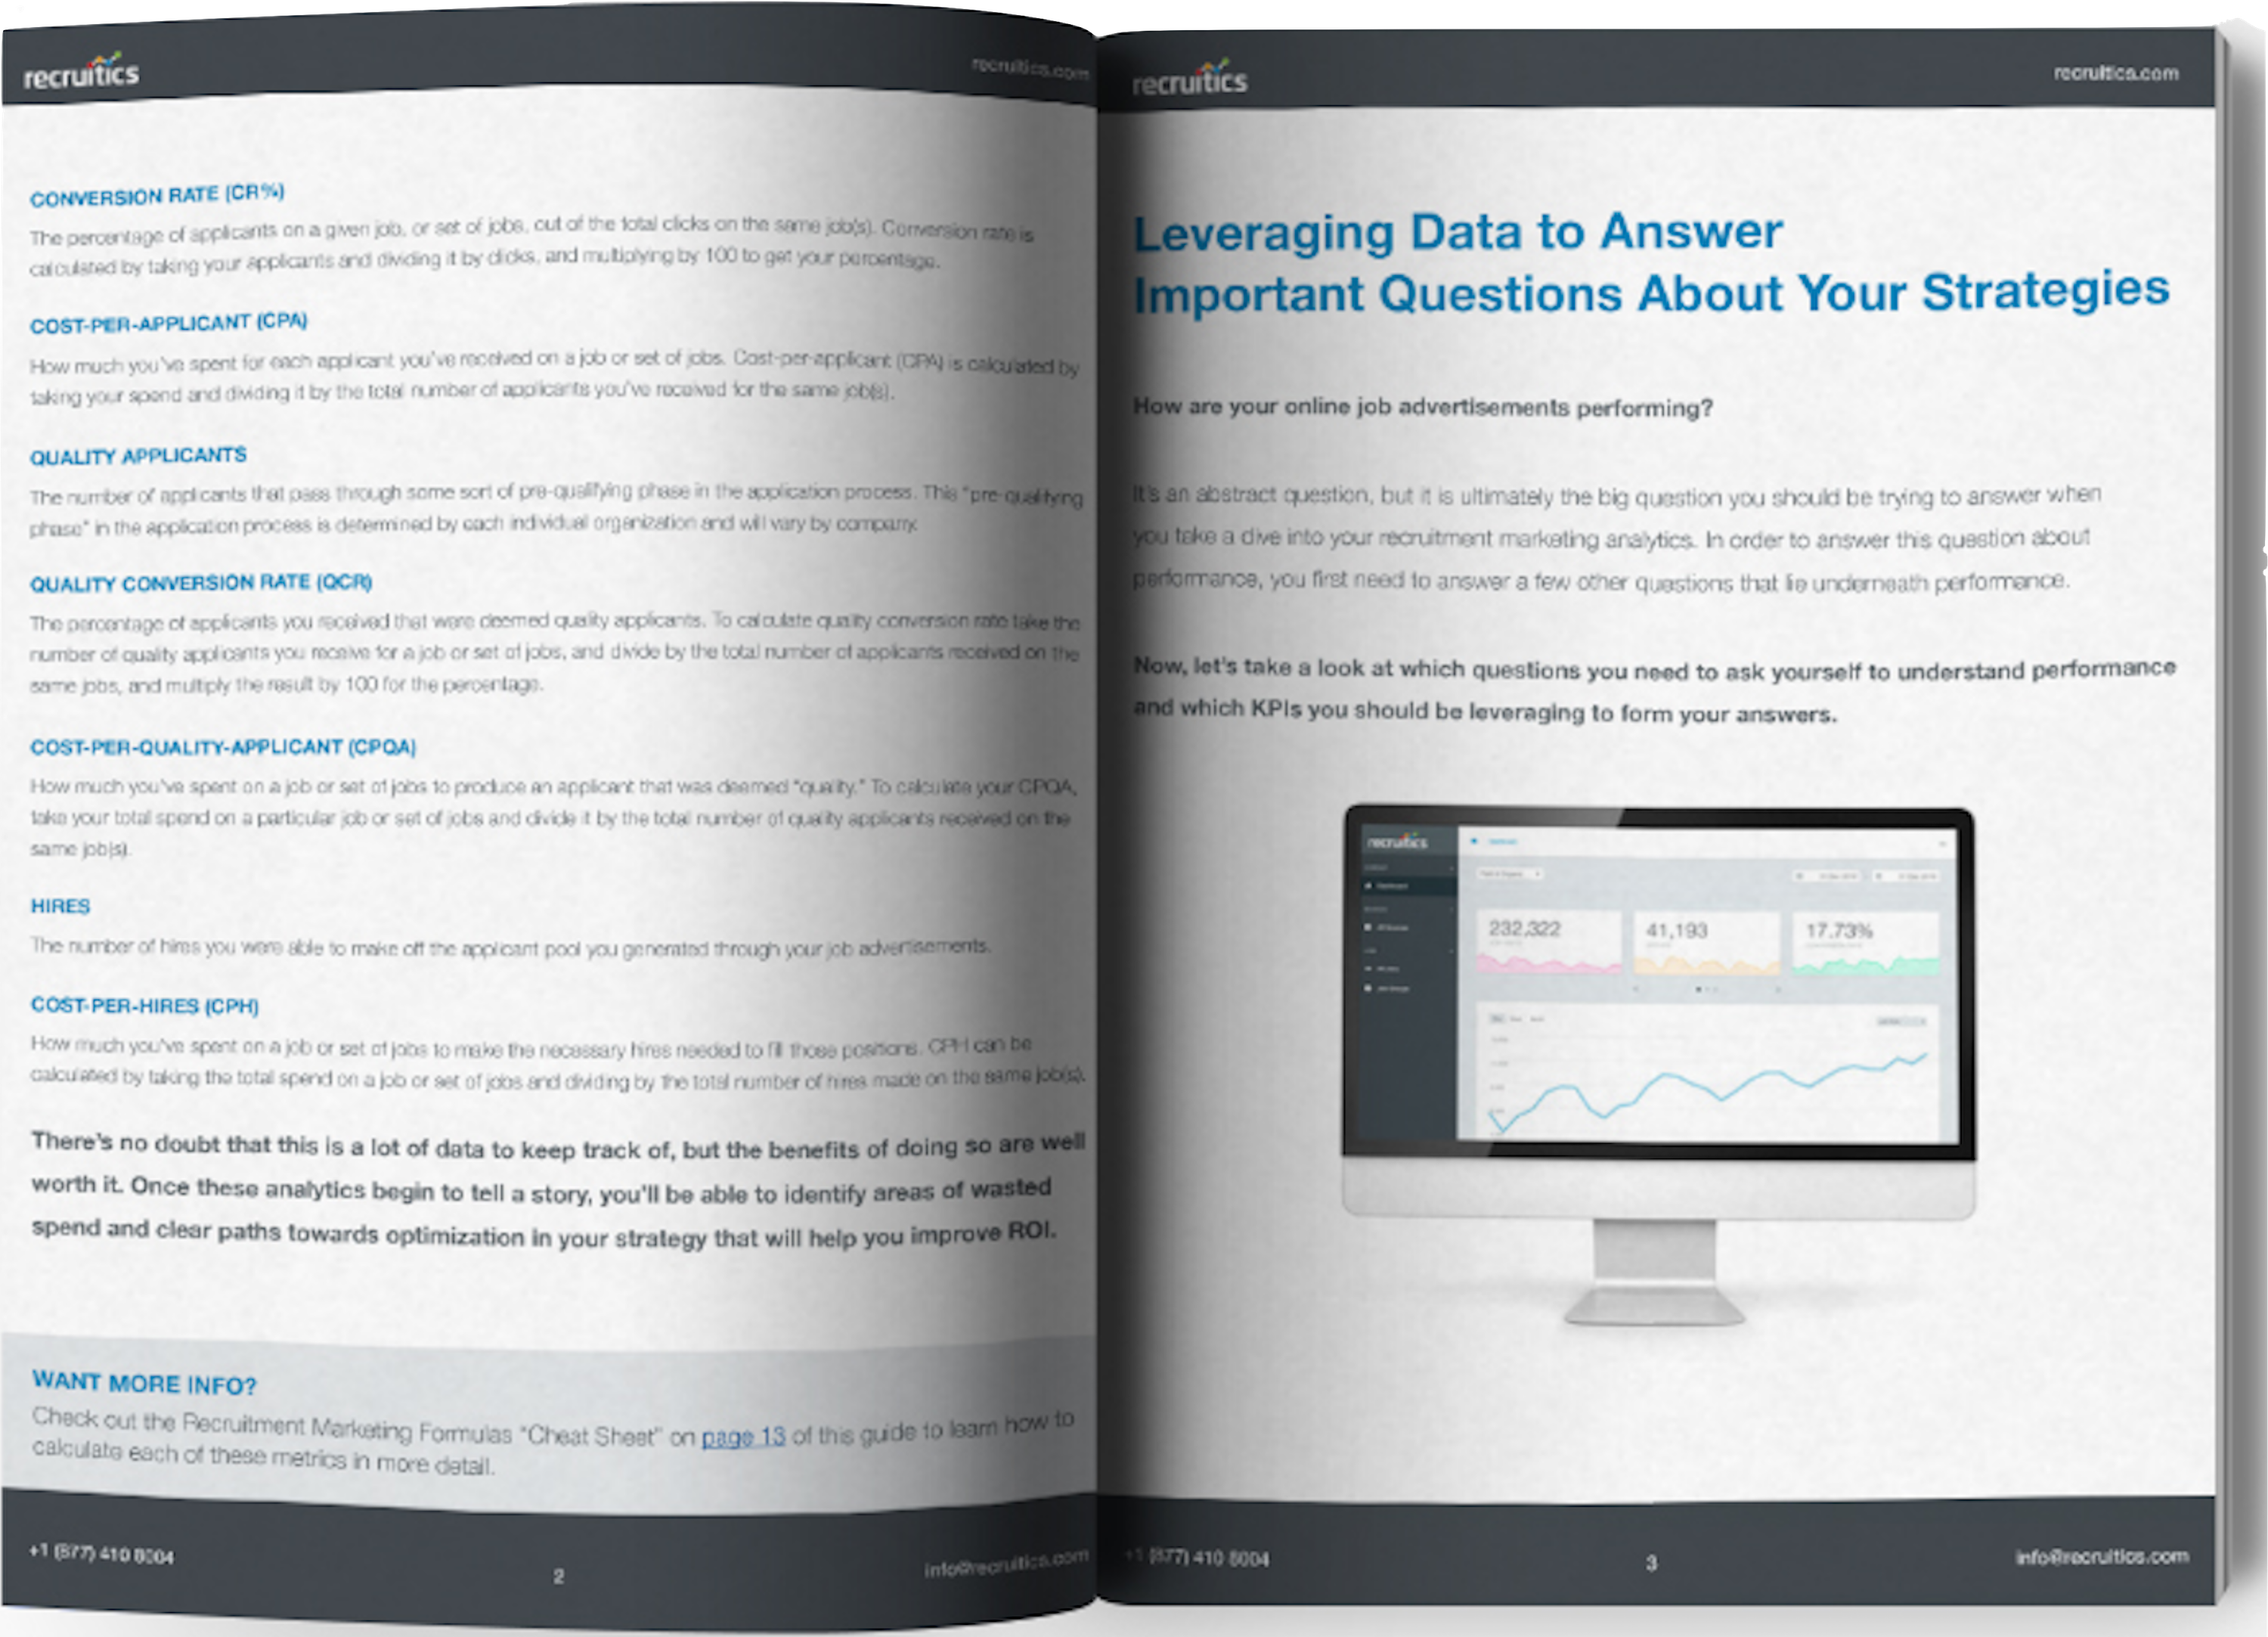 2017 Guide to Recruitment Marketing Analytics ebook image